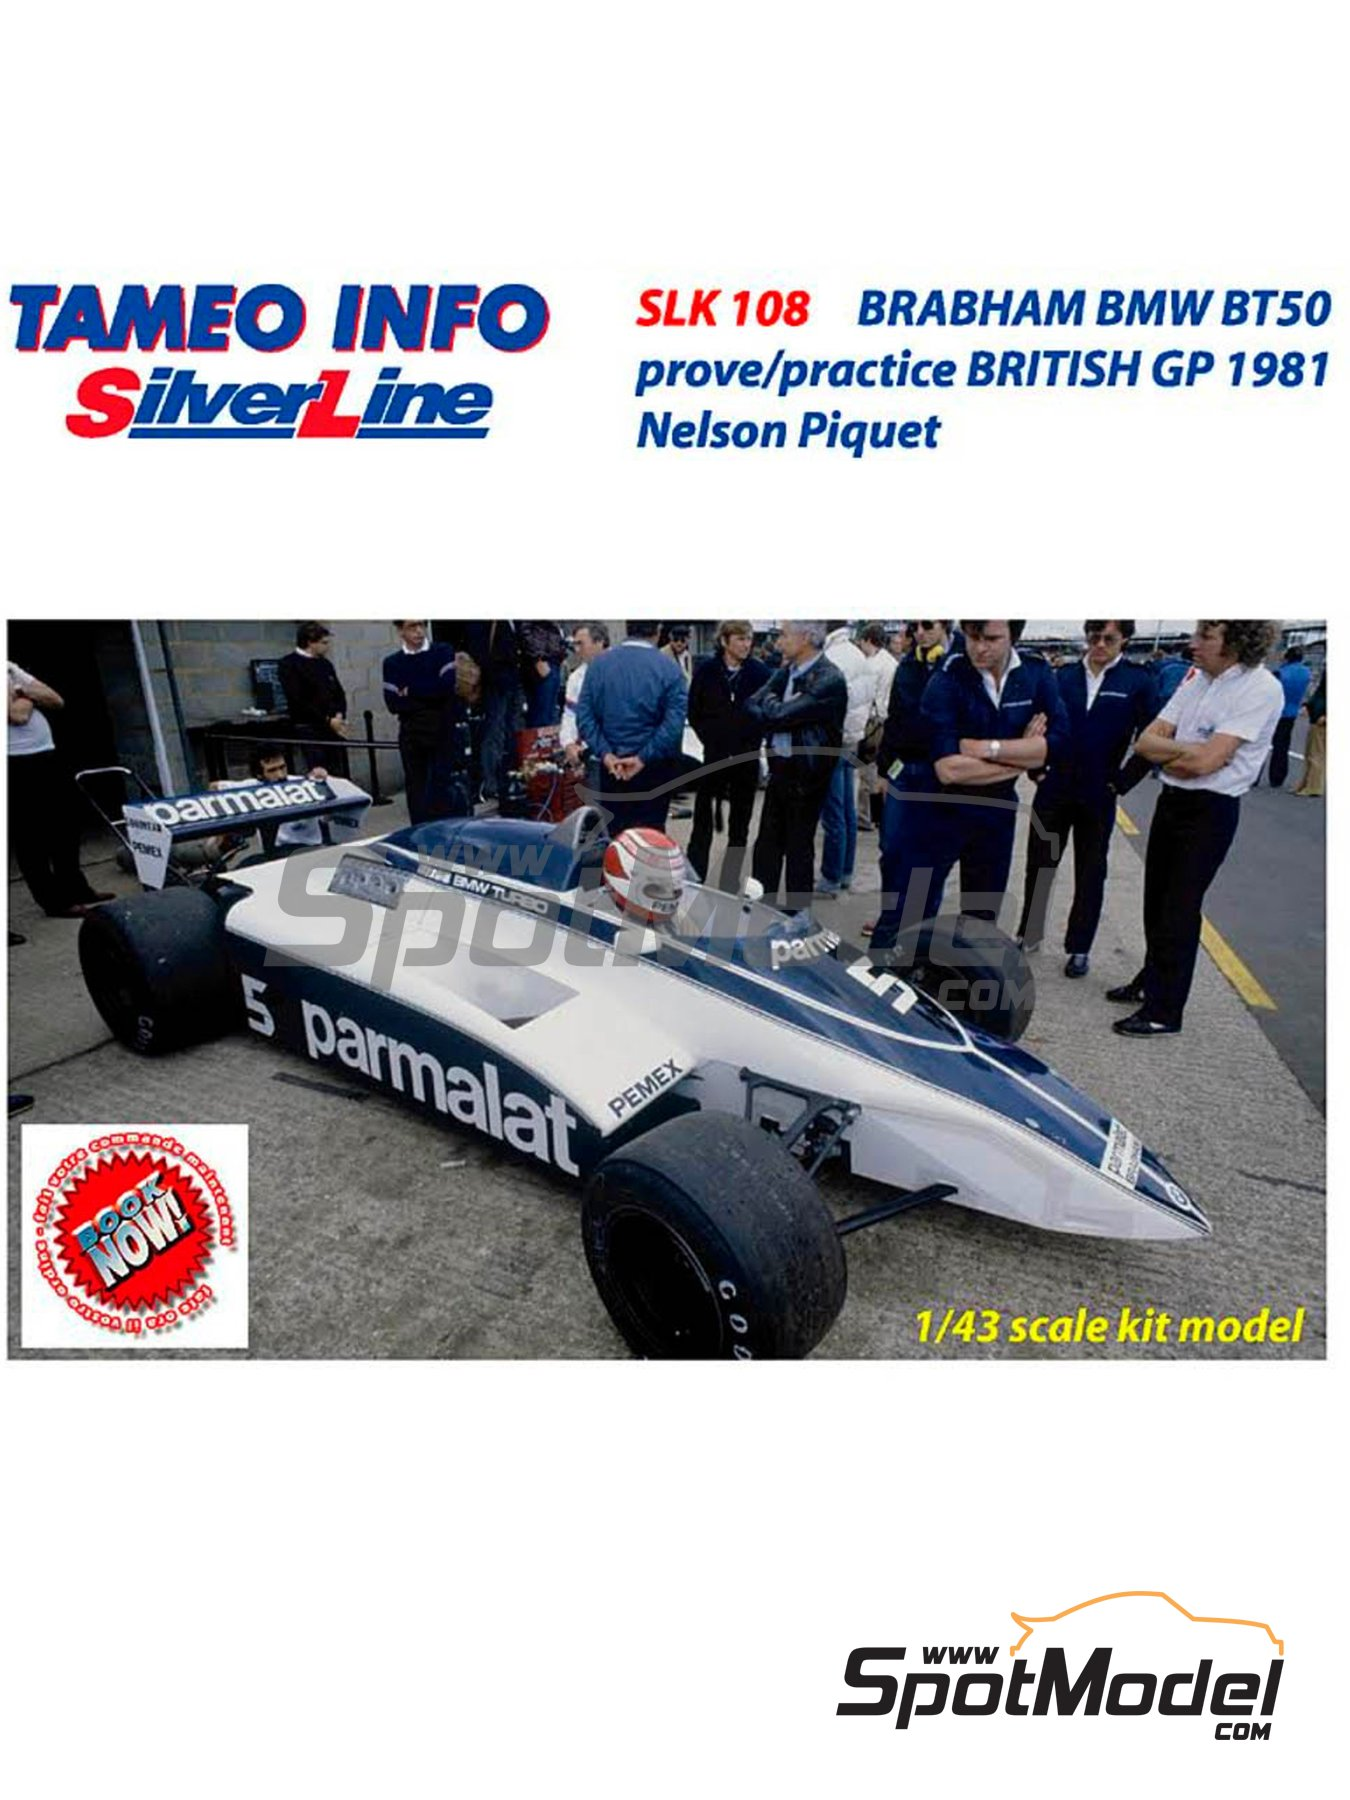 Brabham BMW BT50 Parmalat - British Formula 1 Grand Prix 1981 | Model car kit in 1/43 scale manufactured by Tameo Kits (ref. SLK108) image